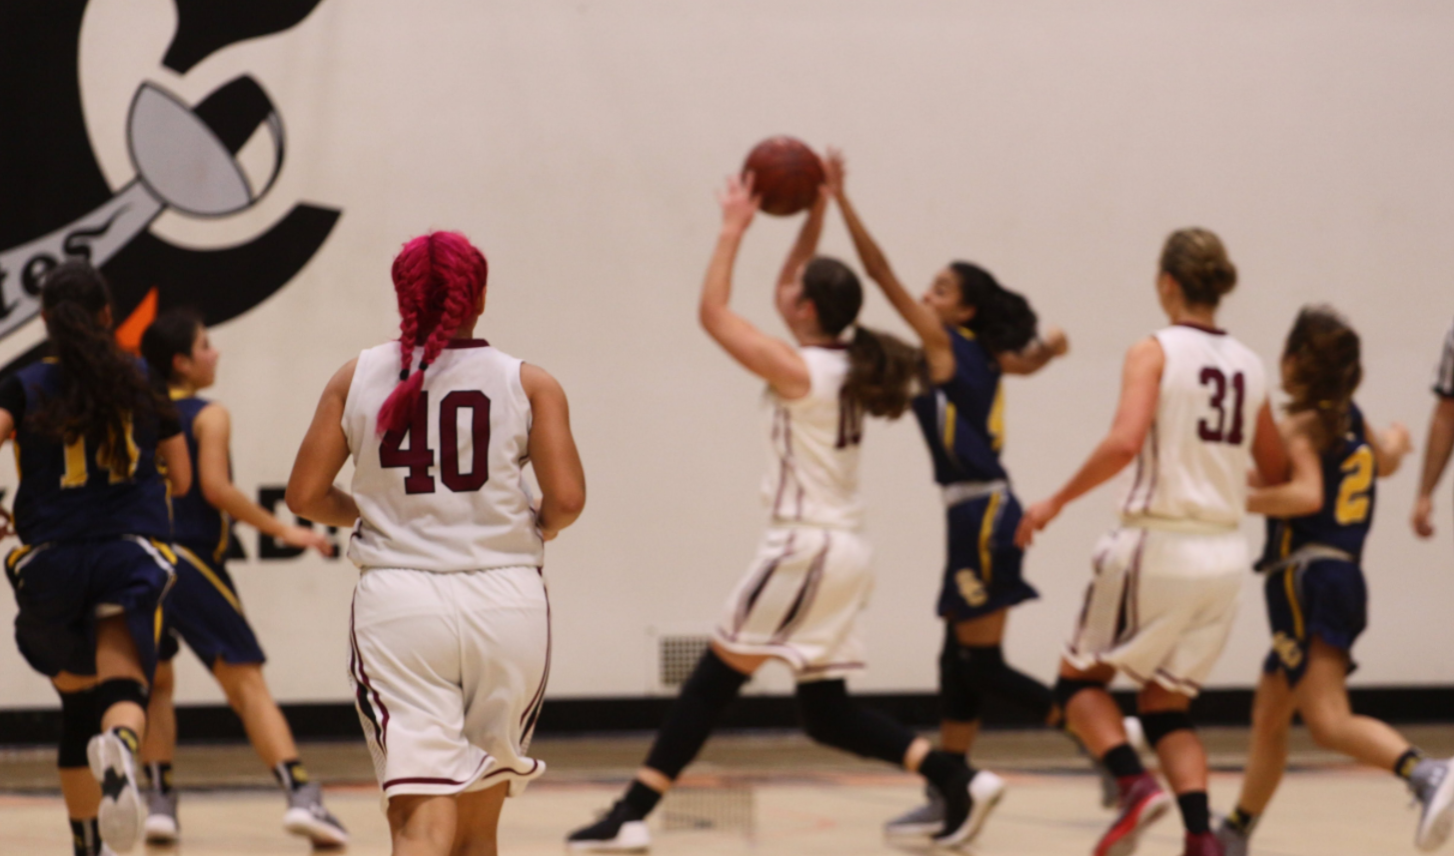 Girls' basketball first home game